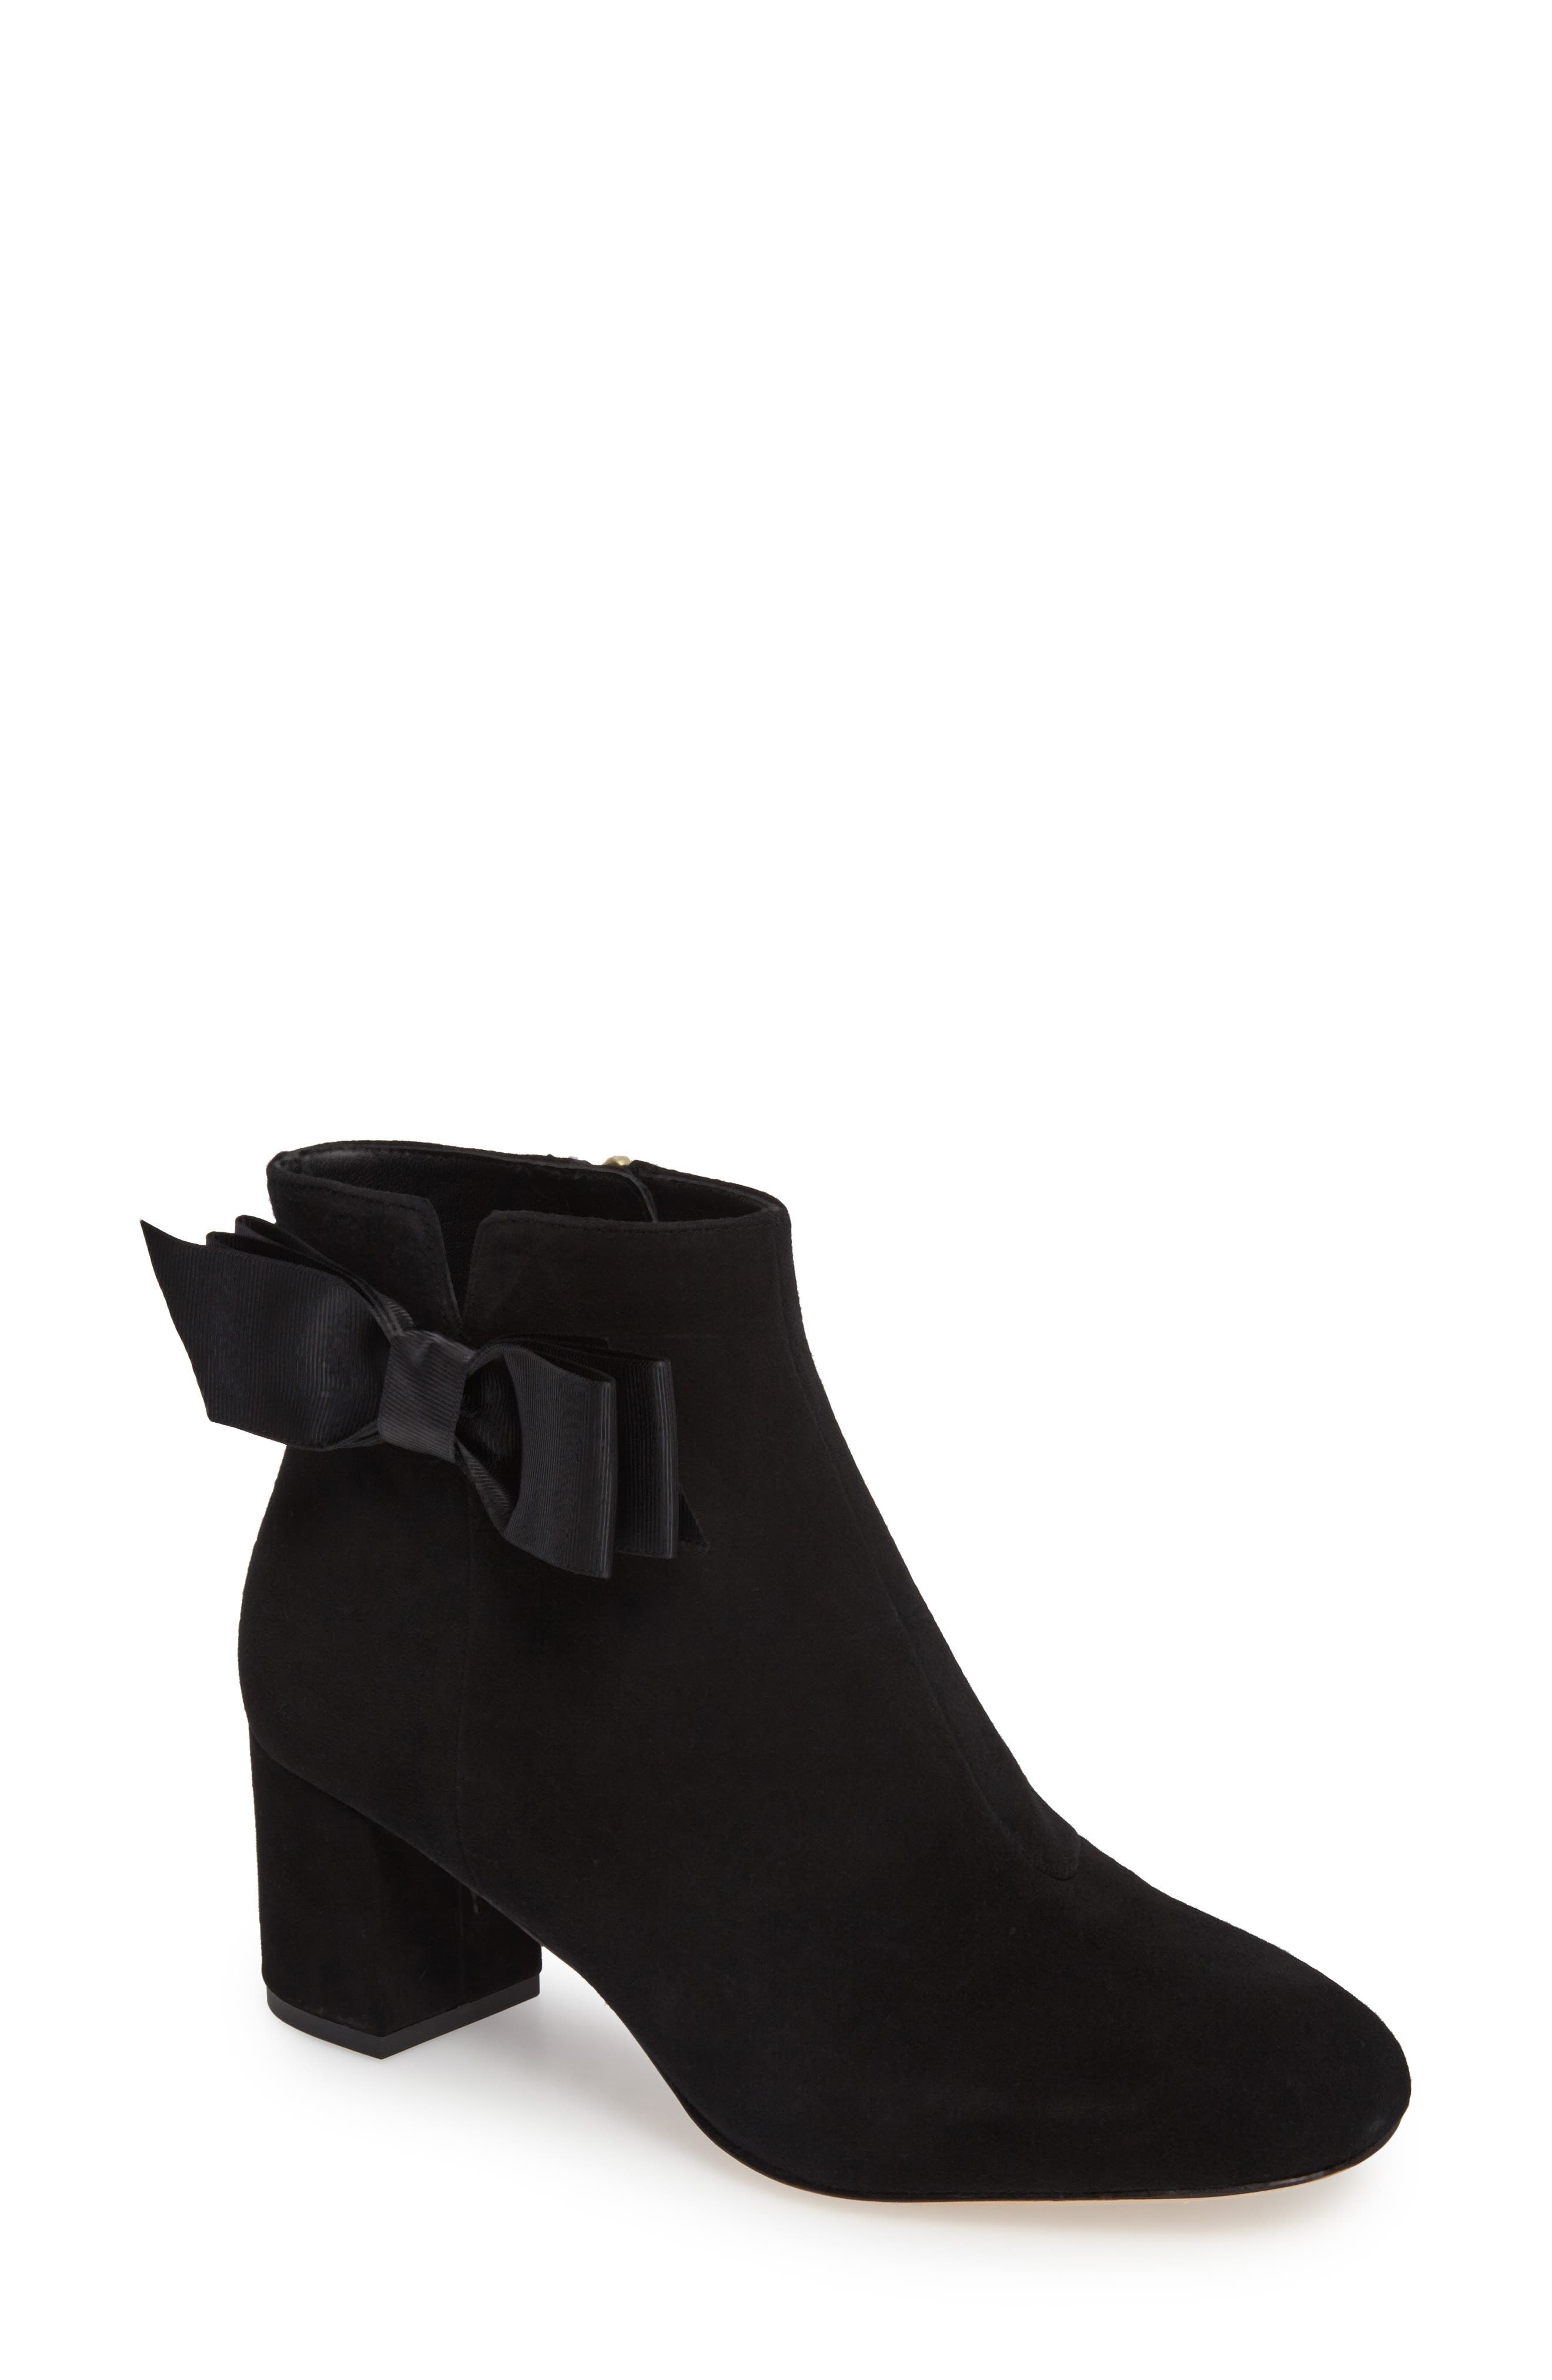 langley bow bootie,                         Main,                         color, Black